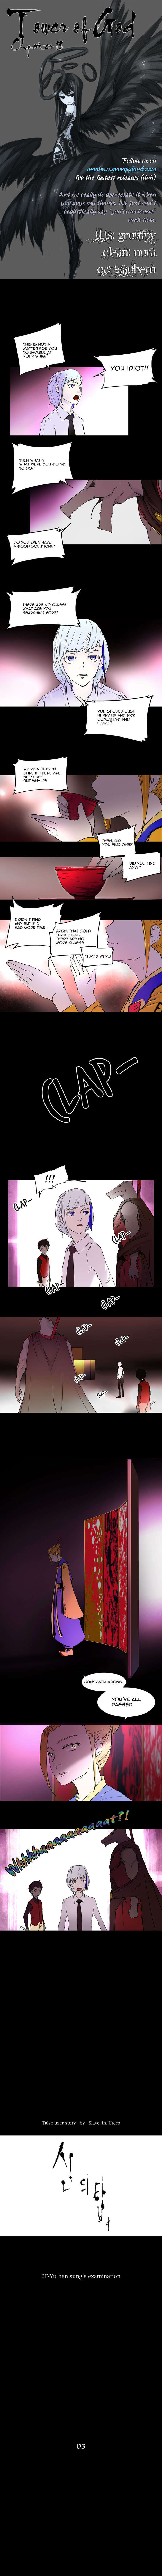 Tower of God 13 Page 1